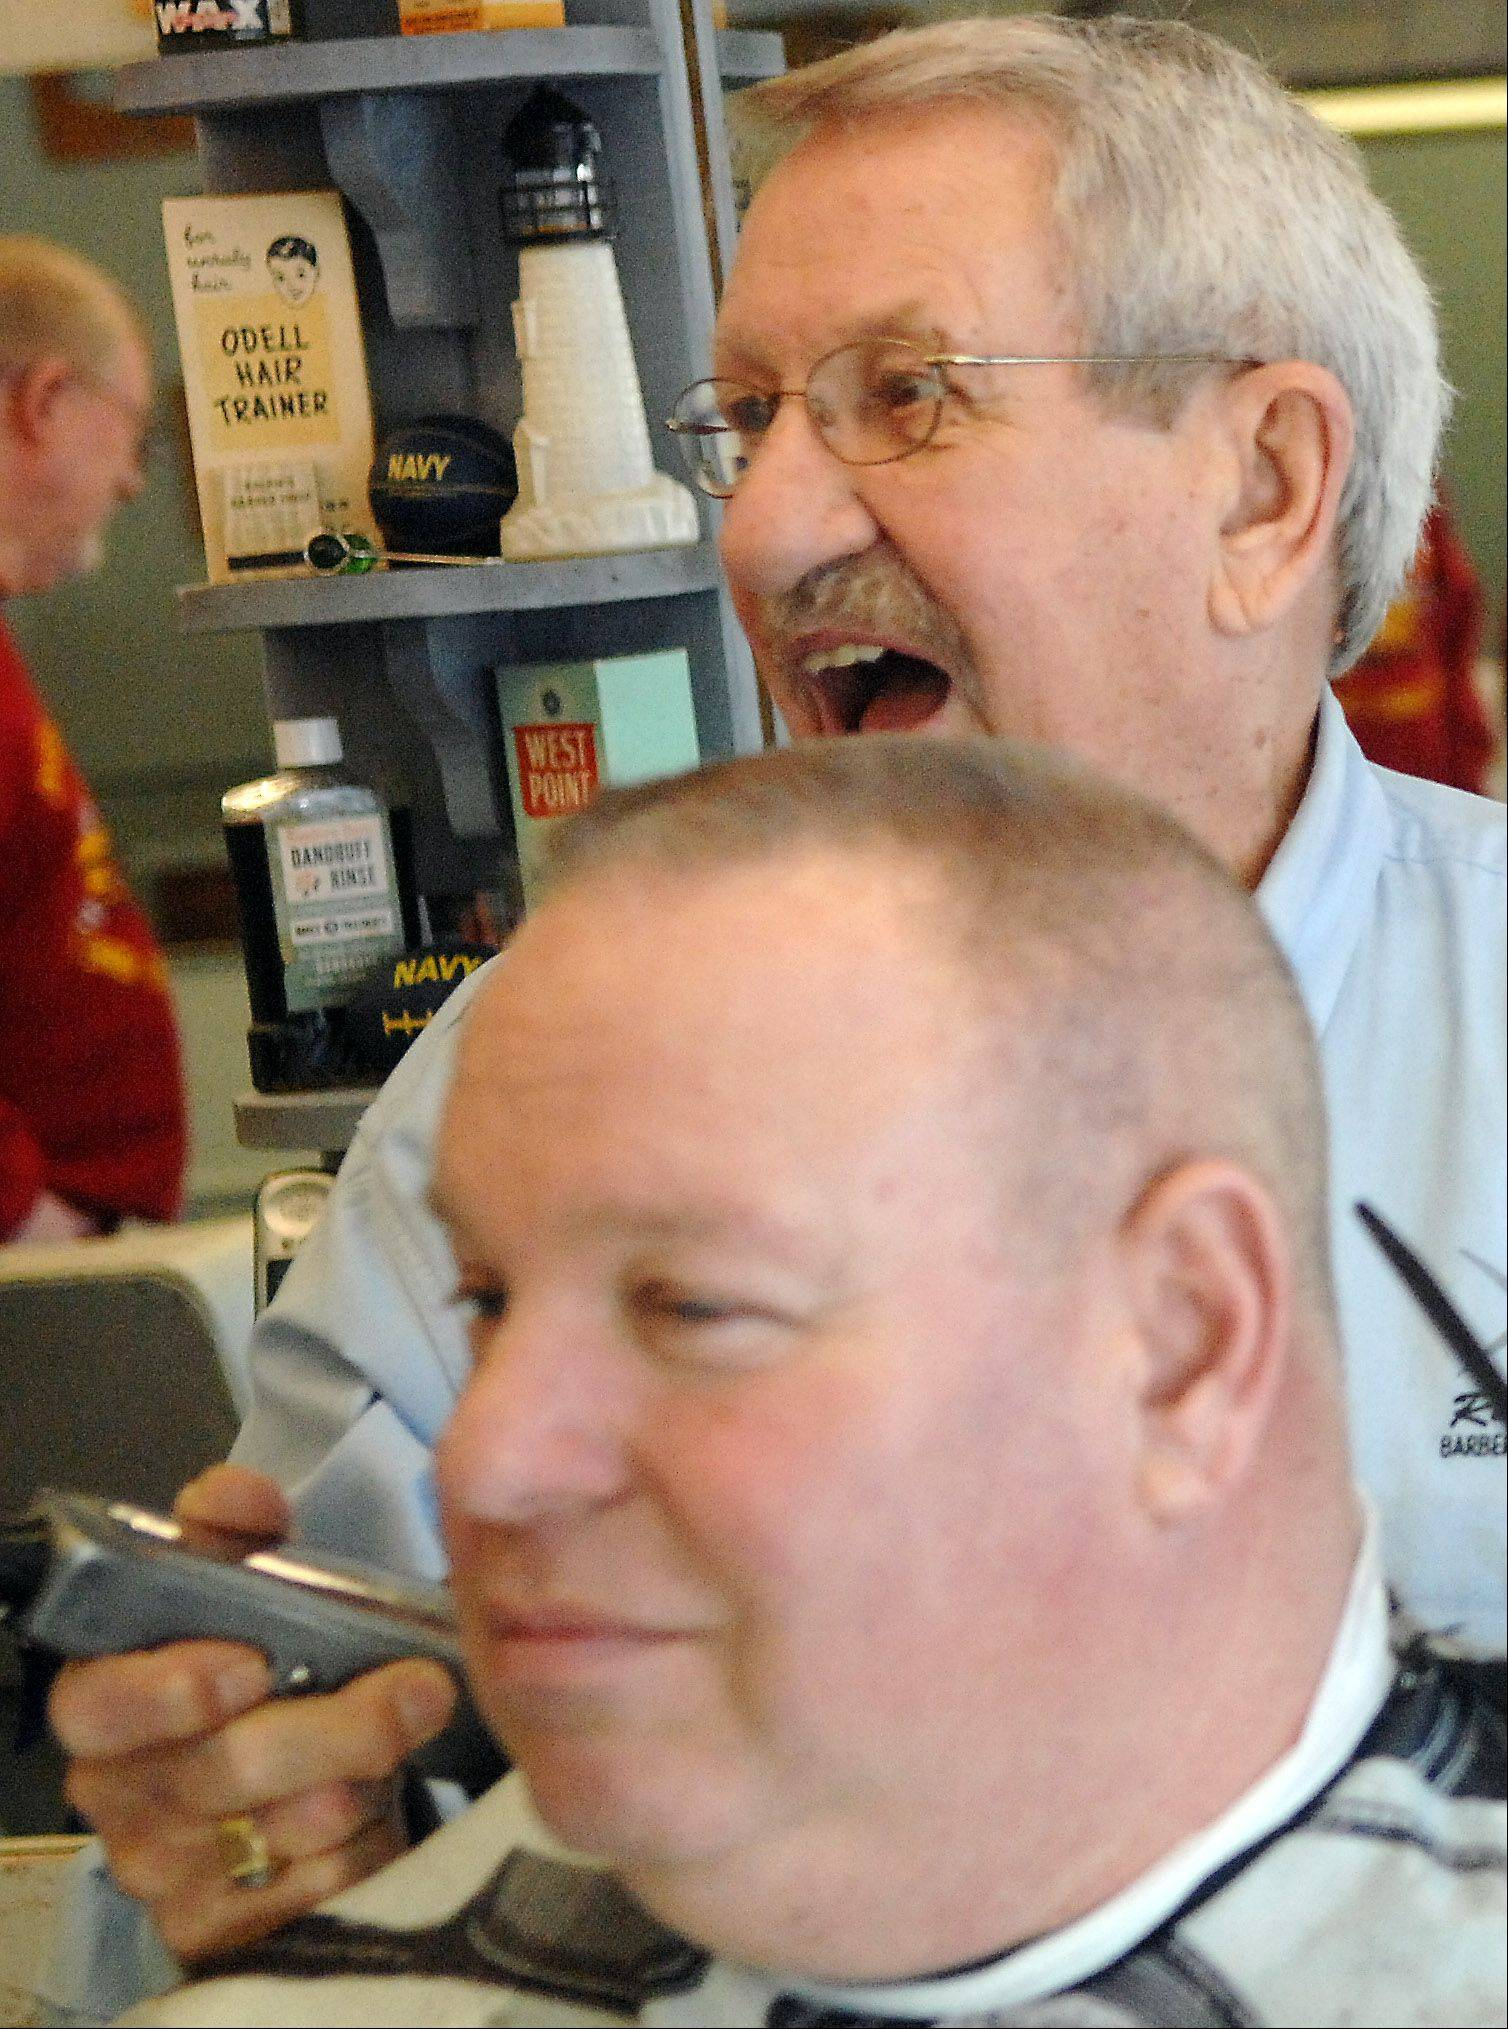 Ralph Ward jokes with another customer while working on Don Meyer of South Elgin this week at Ralph's Barber Shop in Elgin. Ward, who turns 80 today, is likely the longest practicing barber in Elgin.